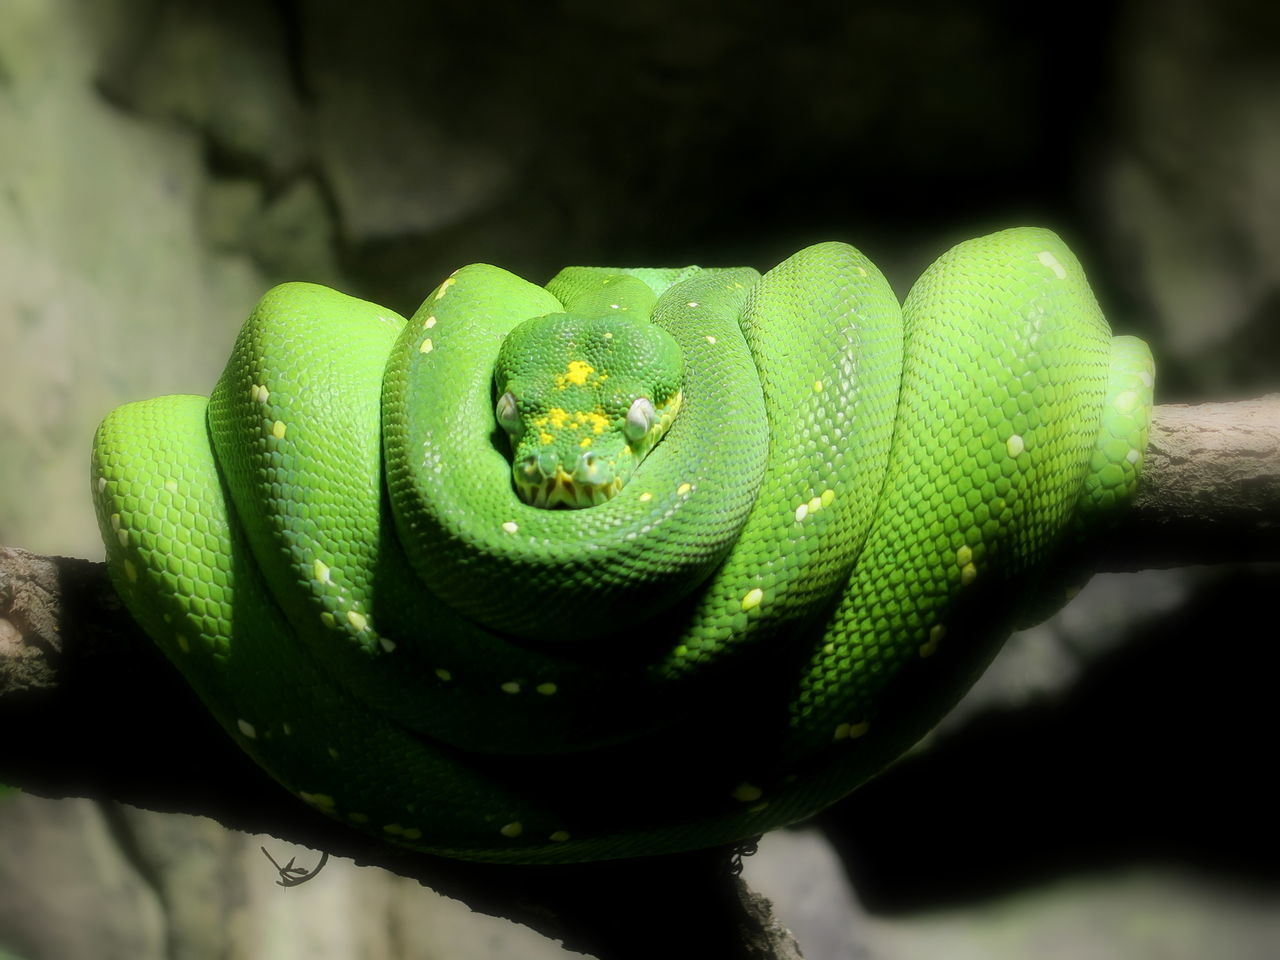 Tree snake: python mimicing a bird's nest Beauty In Nature Bird's Nest Close-up Curled Up Day Detail Focus On Foreground Green Green Color Green Snake Green Snakes /tree Snake Growth Nature No People Outdoors Plant Python Pythons Selective Focus Snake Snakes Tree Snake